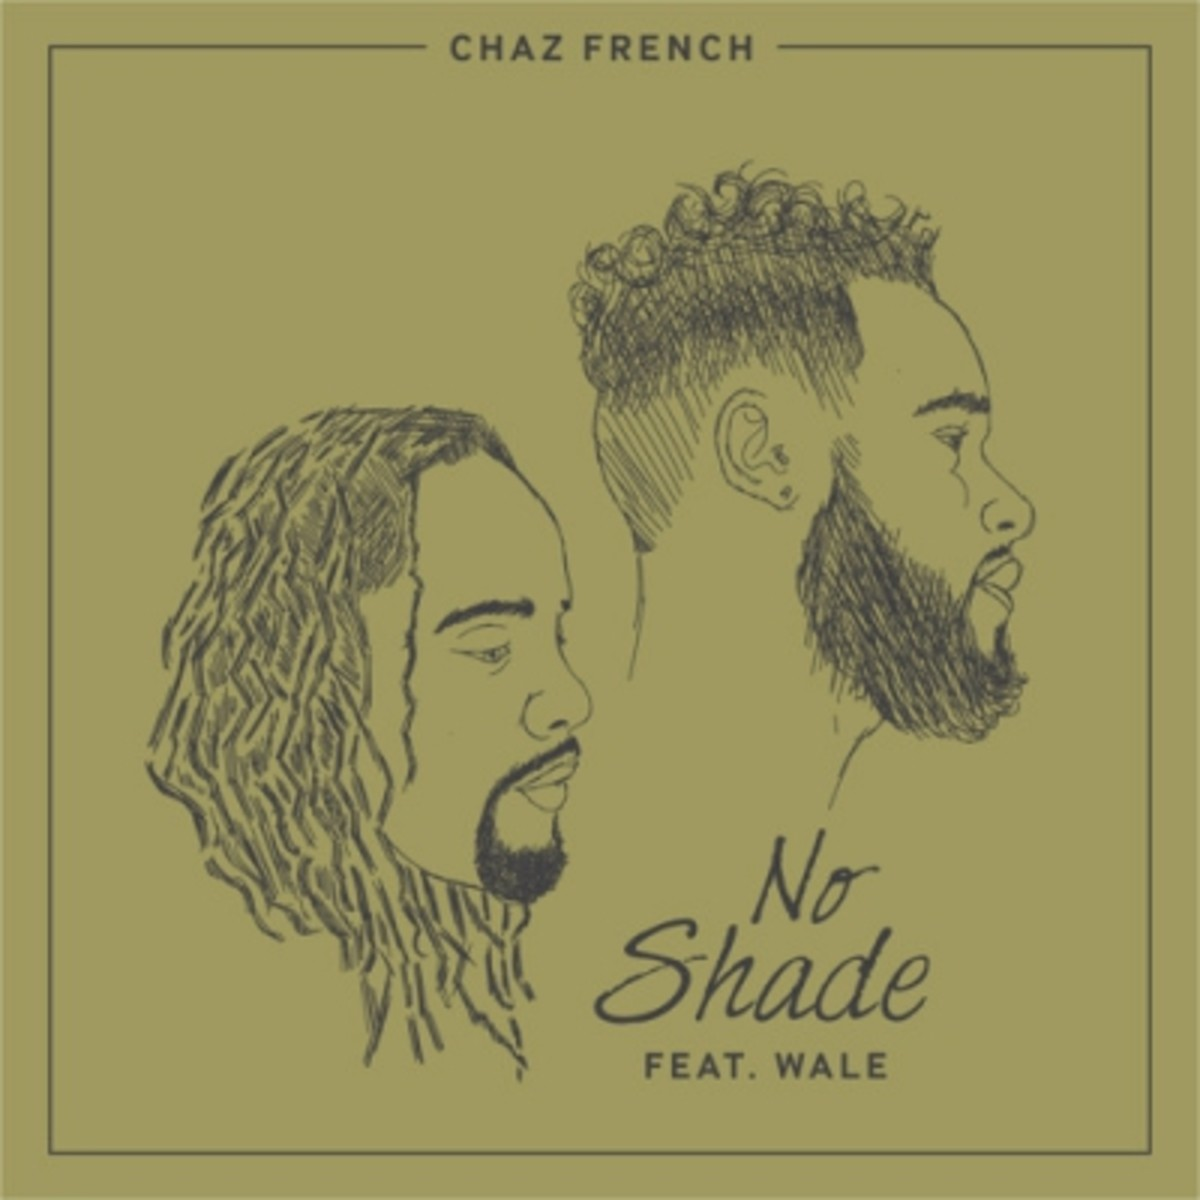 chaz-french-no-shade.jpg